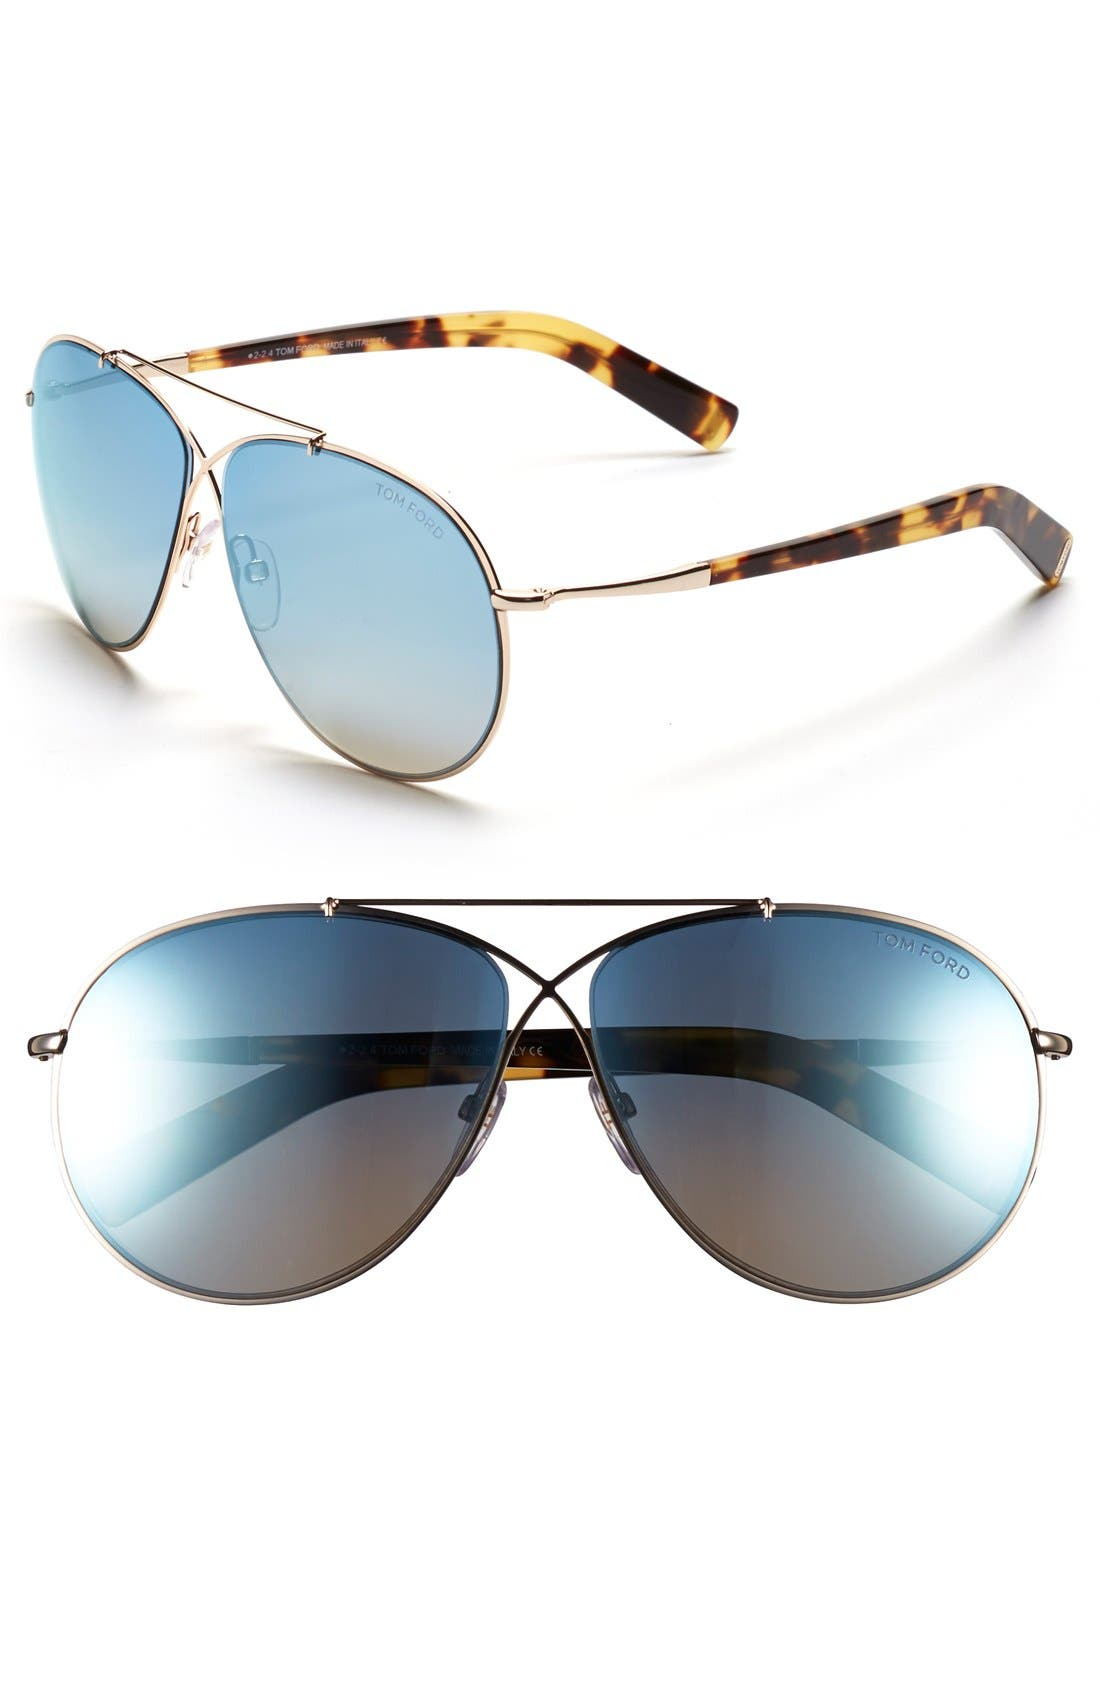 Image of Tom Ford Eva 61mm Aviator Sunglasses